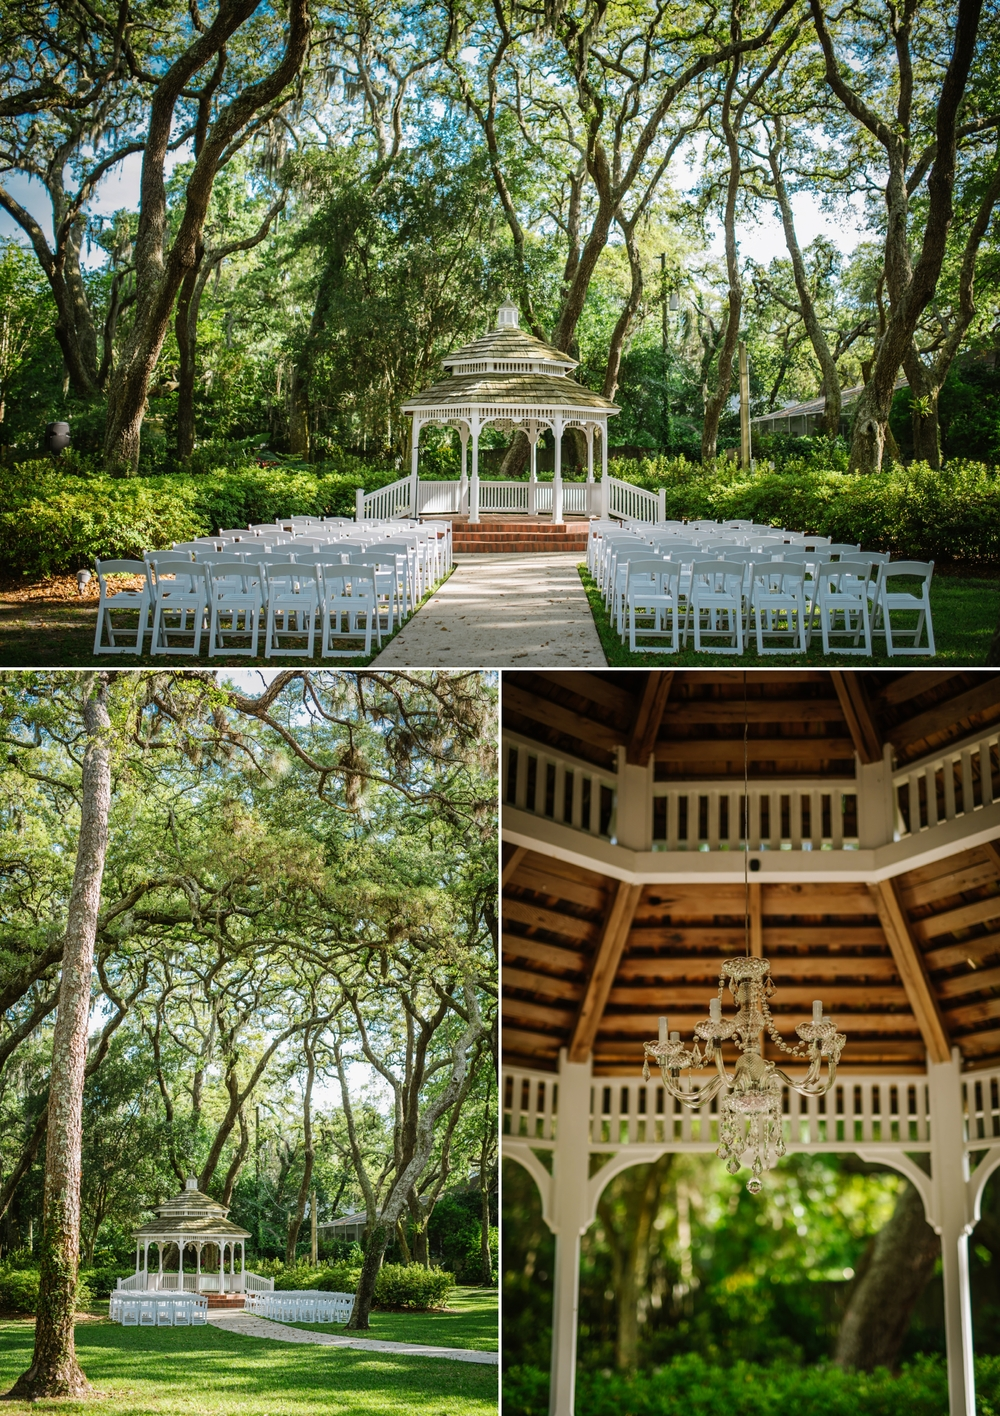 ashlee-hamon-photography-tampa-rustic-outdoor-traditional-wedding_0000.jpg